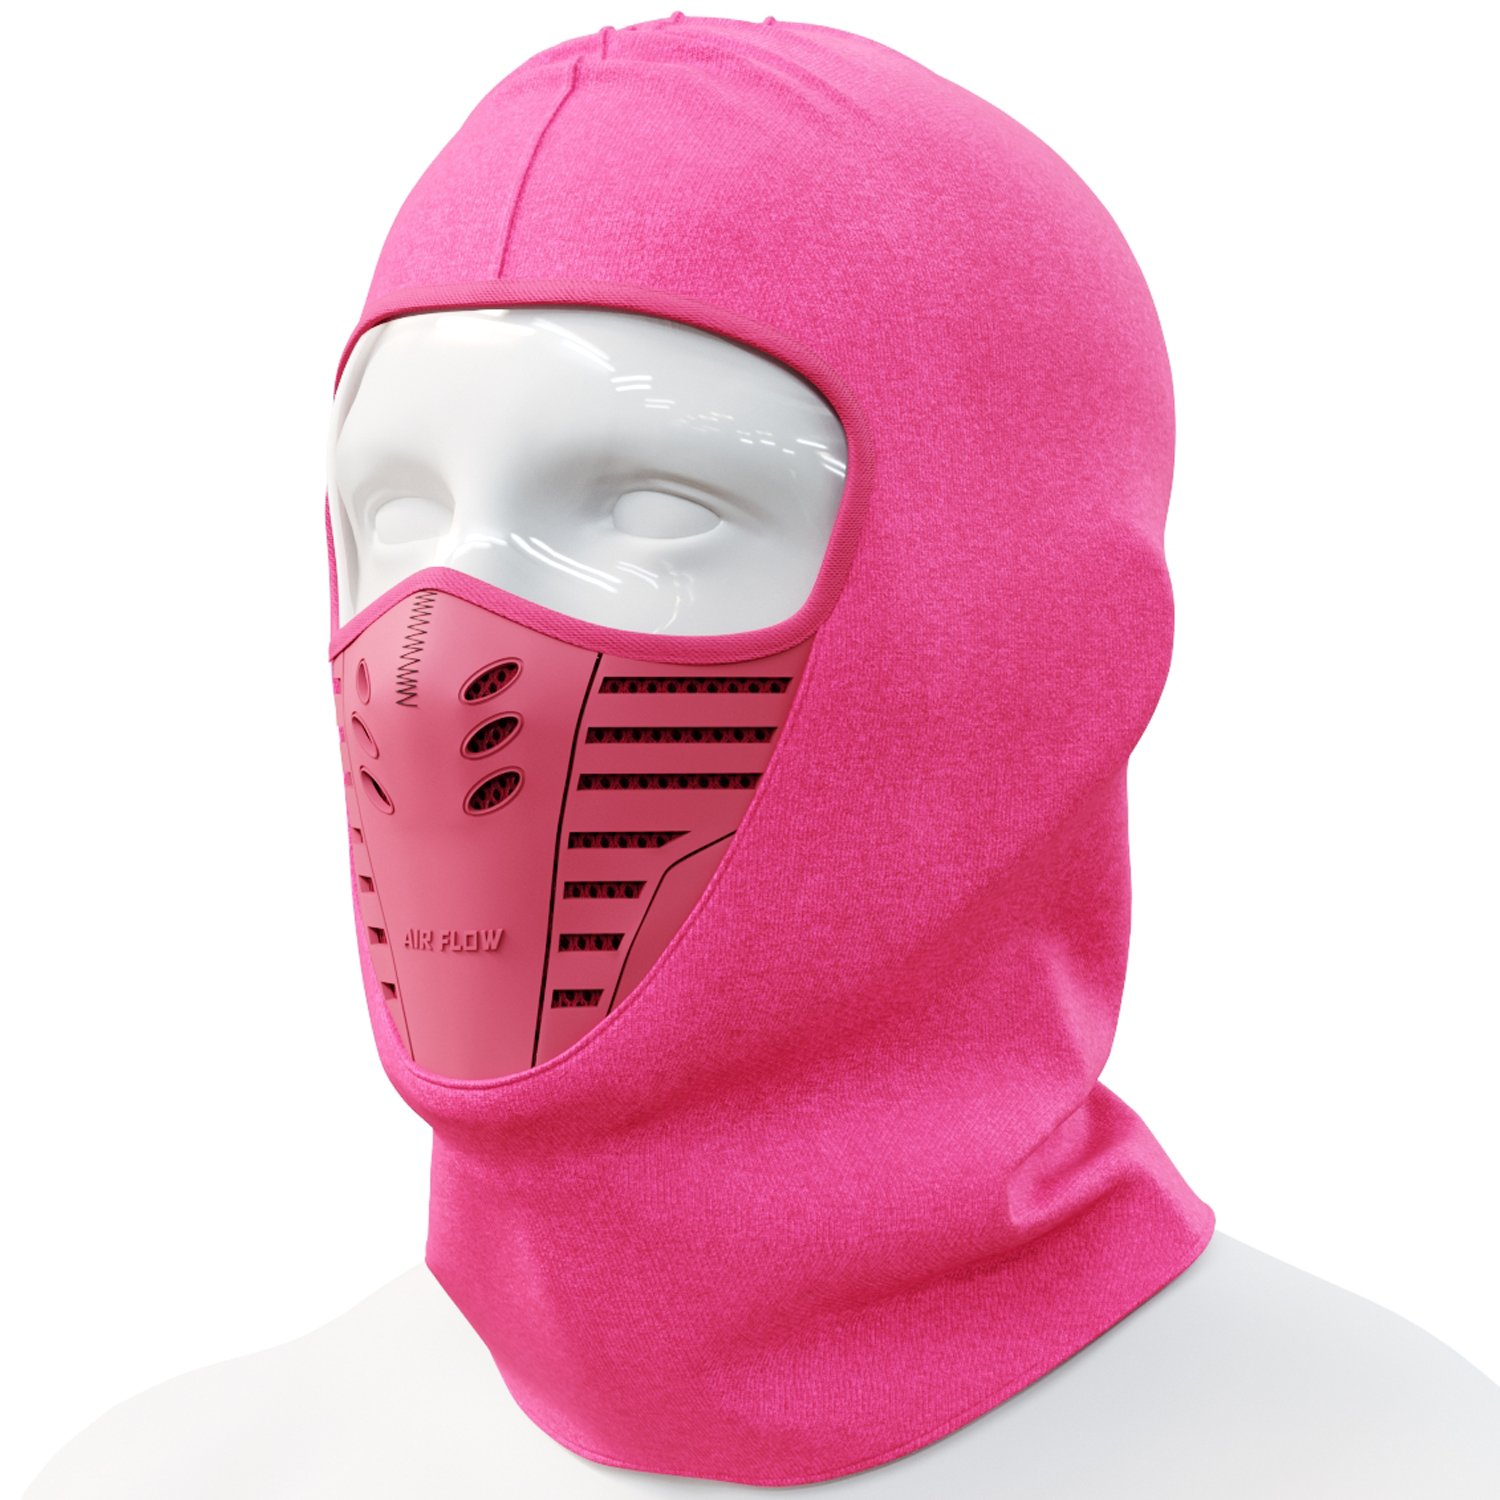 Balaclava Face Mask | Wind Resistant and Dust proof Winter Ski Mask Hoodie Style by